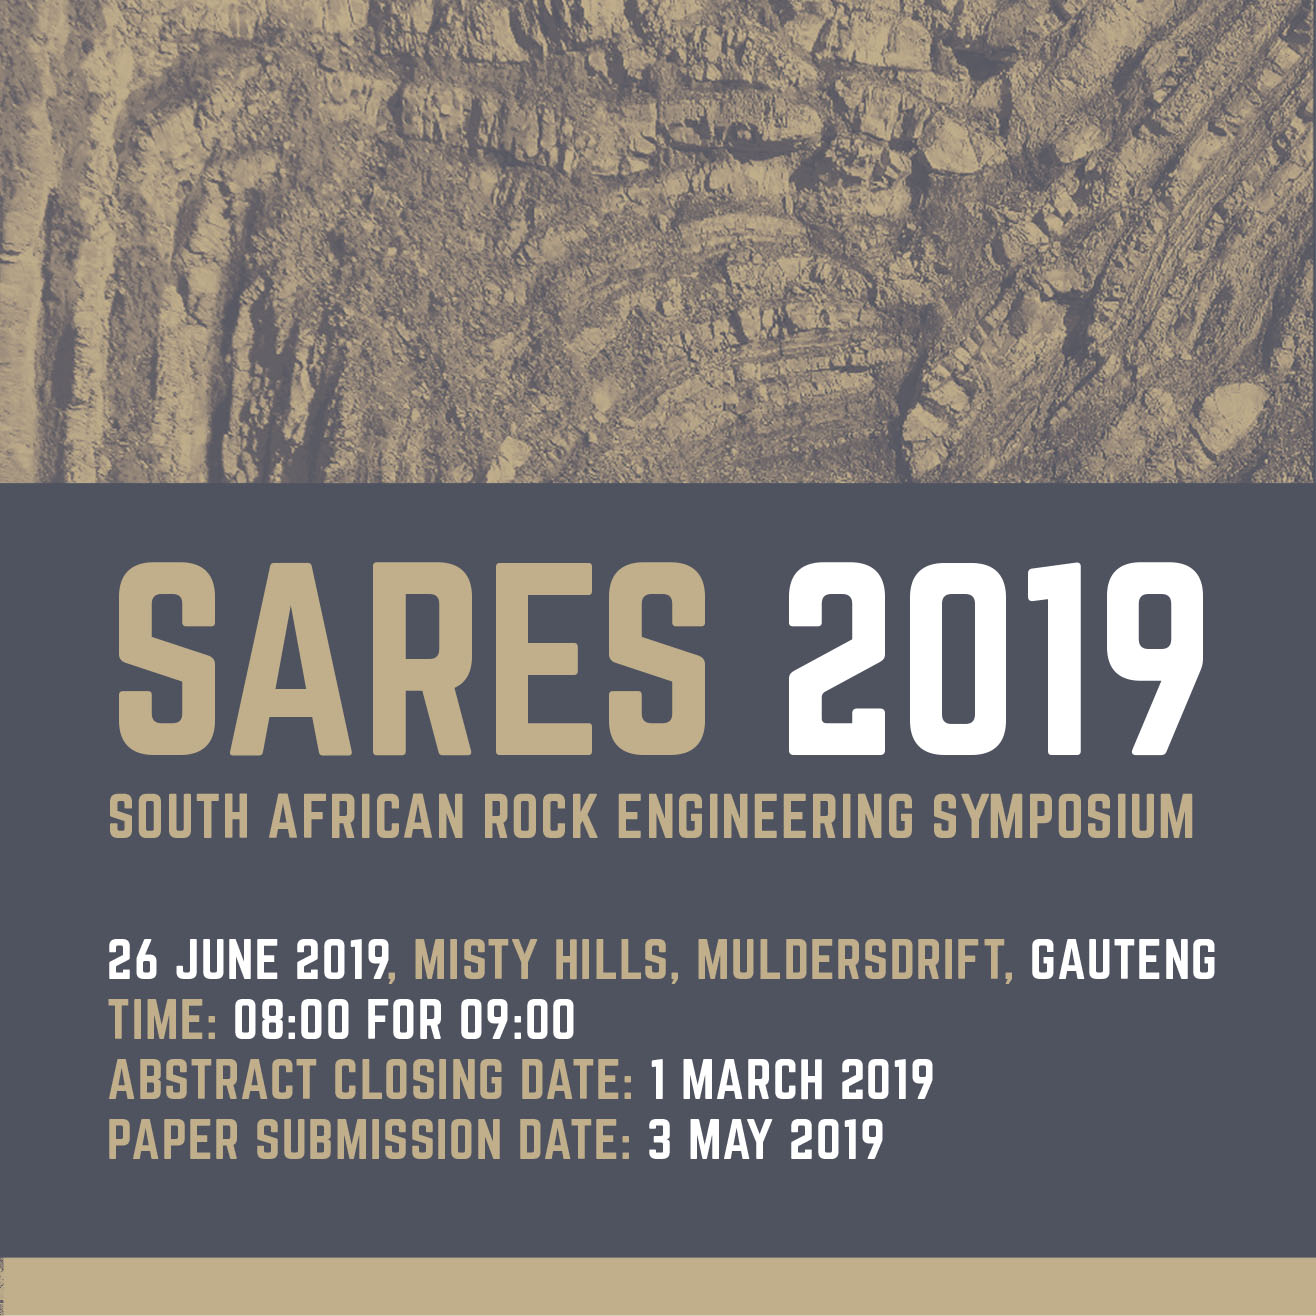 https://www.sanire.co.za/images/stories/News/SARES-2019FP.jpg